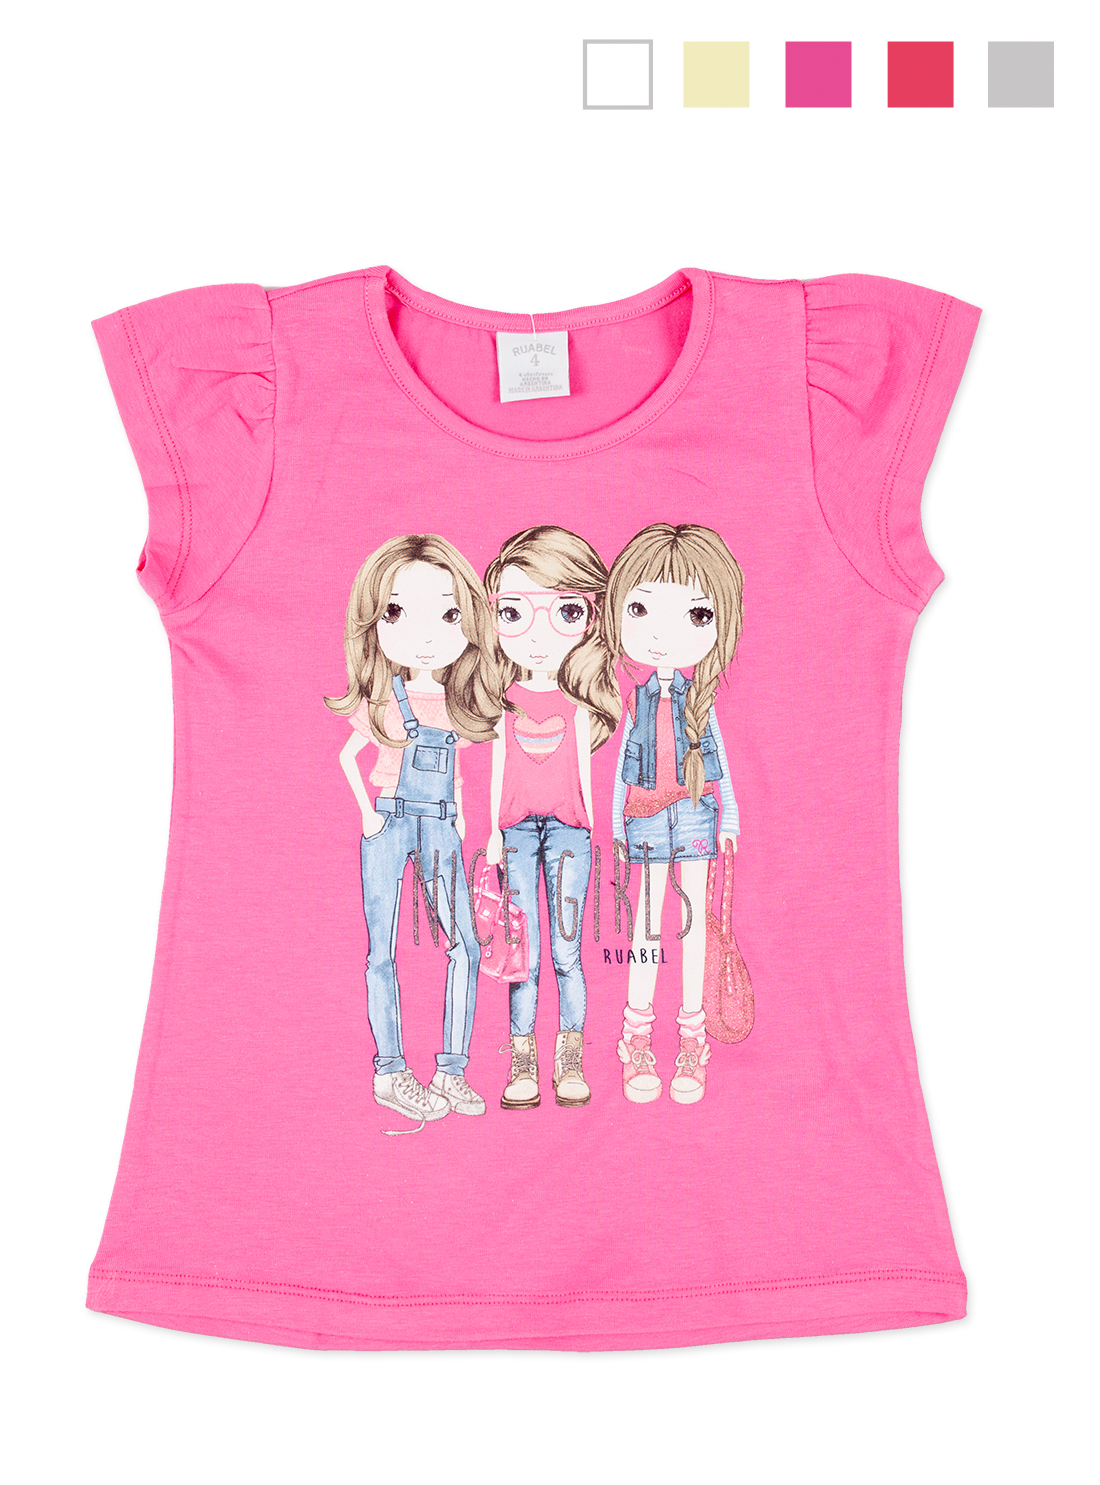 REMERA ART.509 T.4/6/8/12 NENA CON ESTAMPA AMIGAS FASHION Talles: 4 A 12